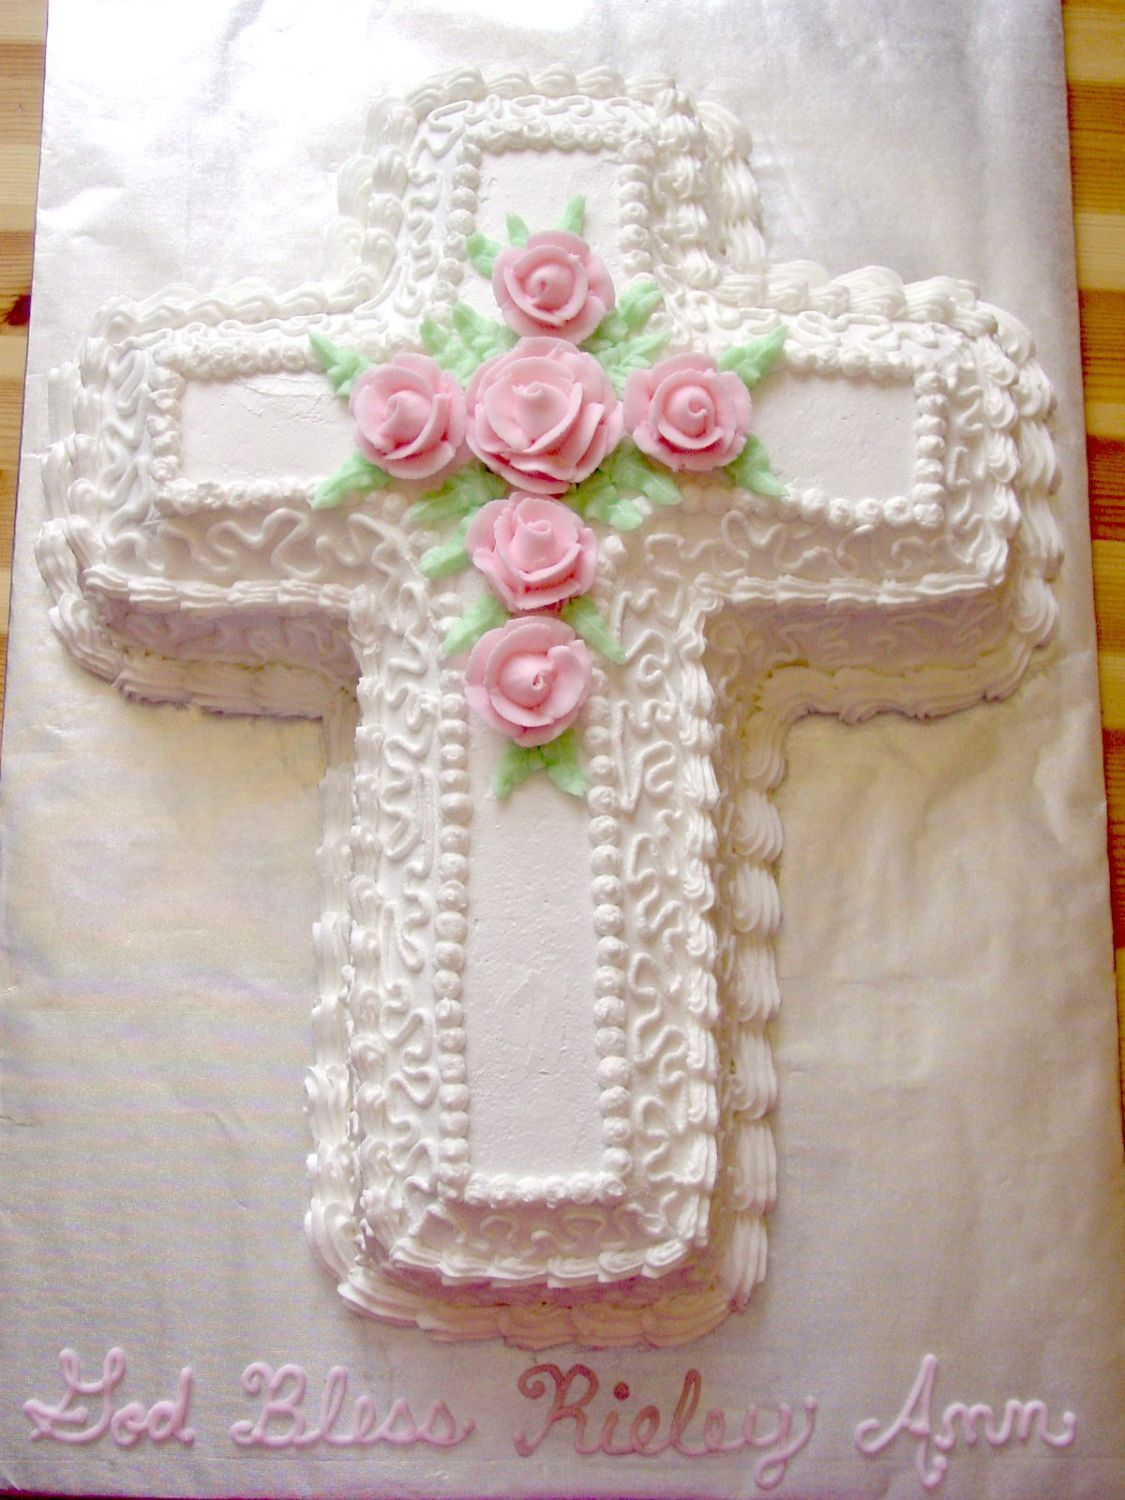 10 Photos of Cross Cakes Decorated With Roses